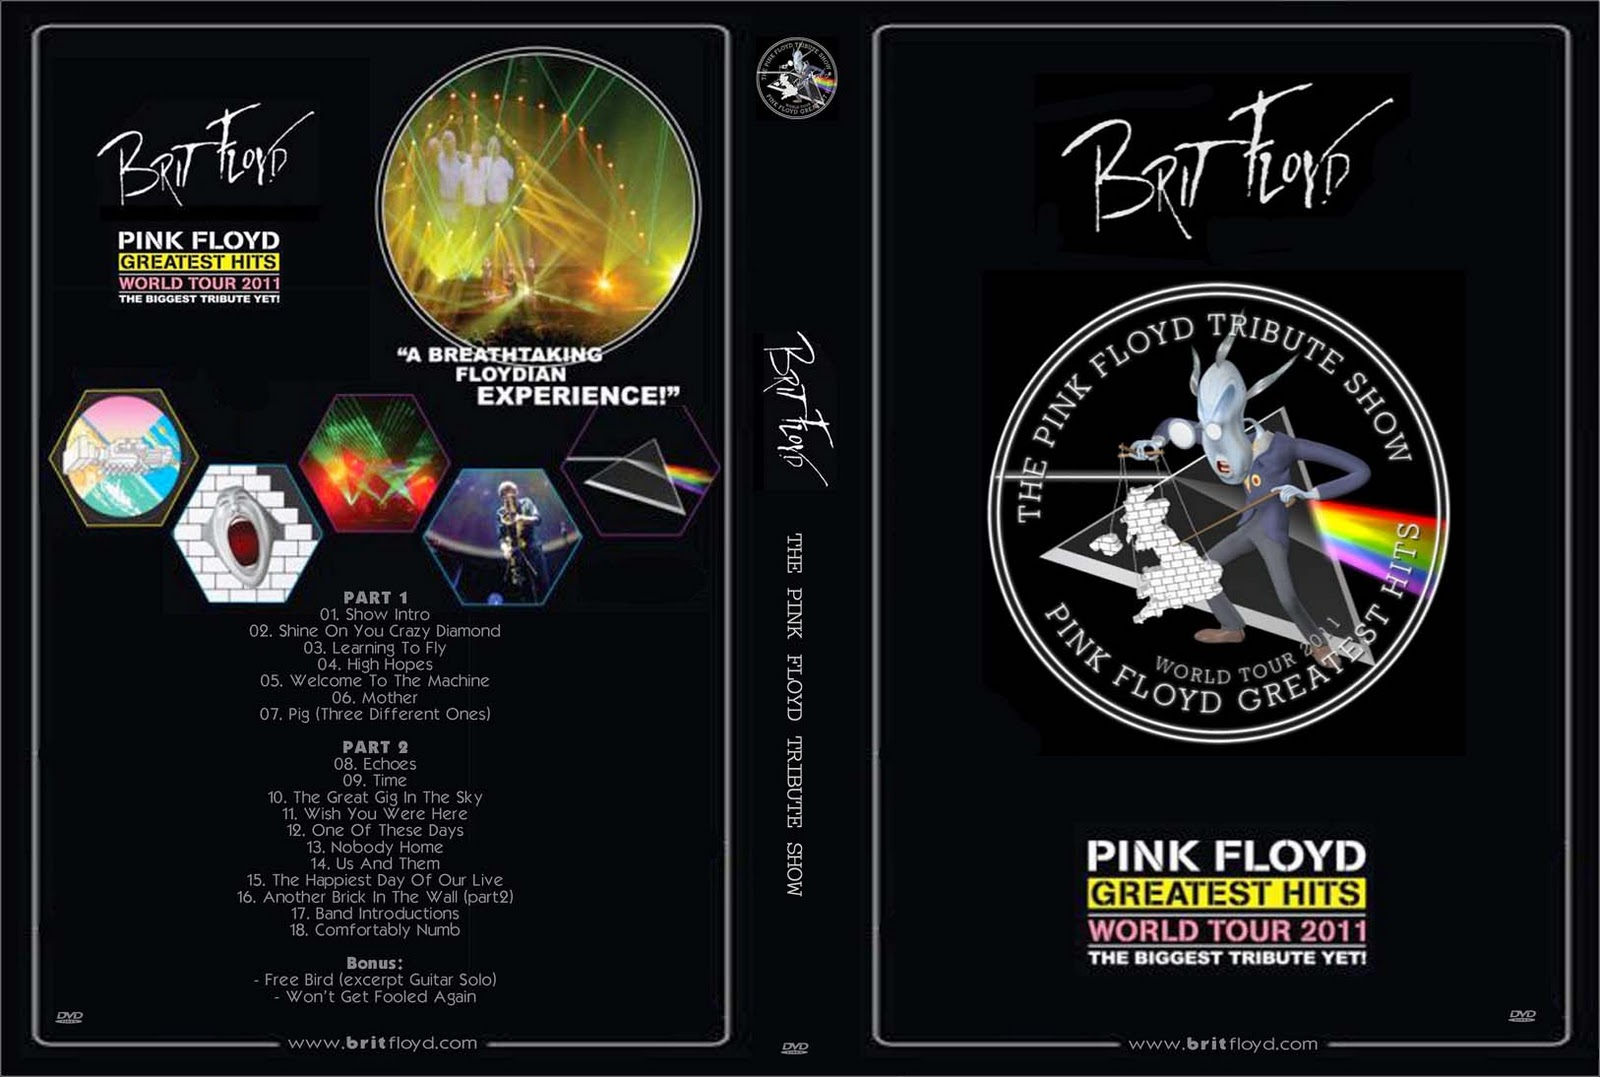 DVD Concert TH Power By Deer 5001 Brit Floyd The Pink Floyd Tribute Show 2011